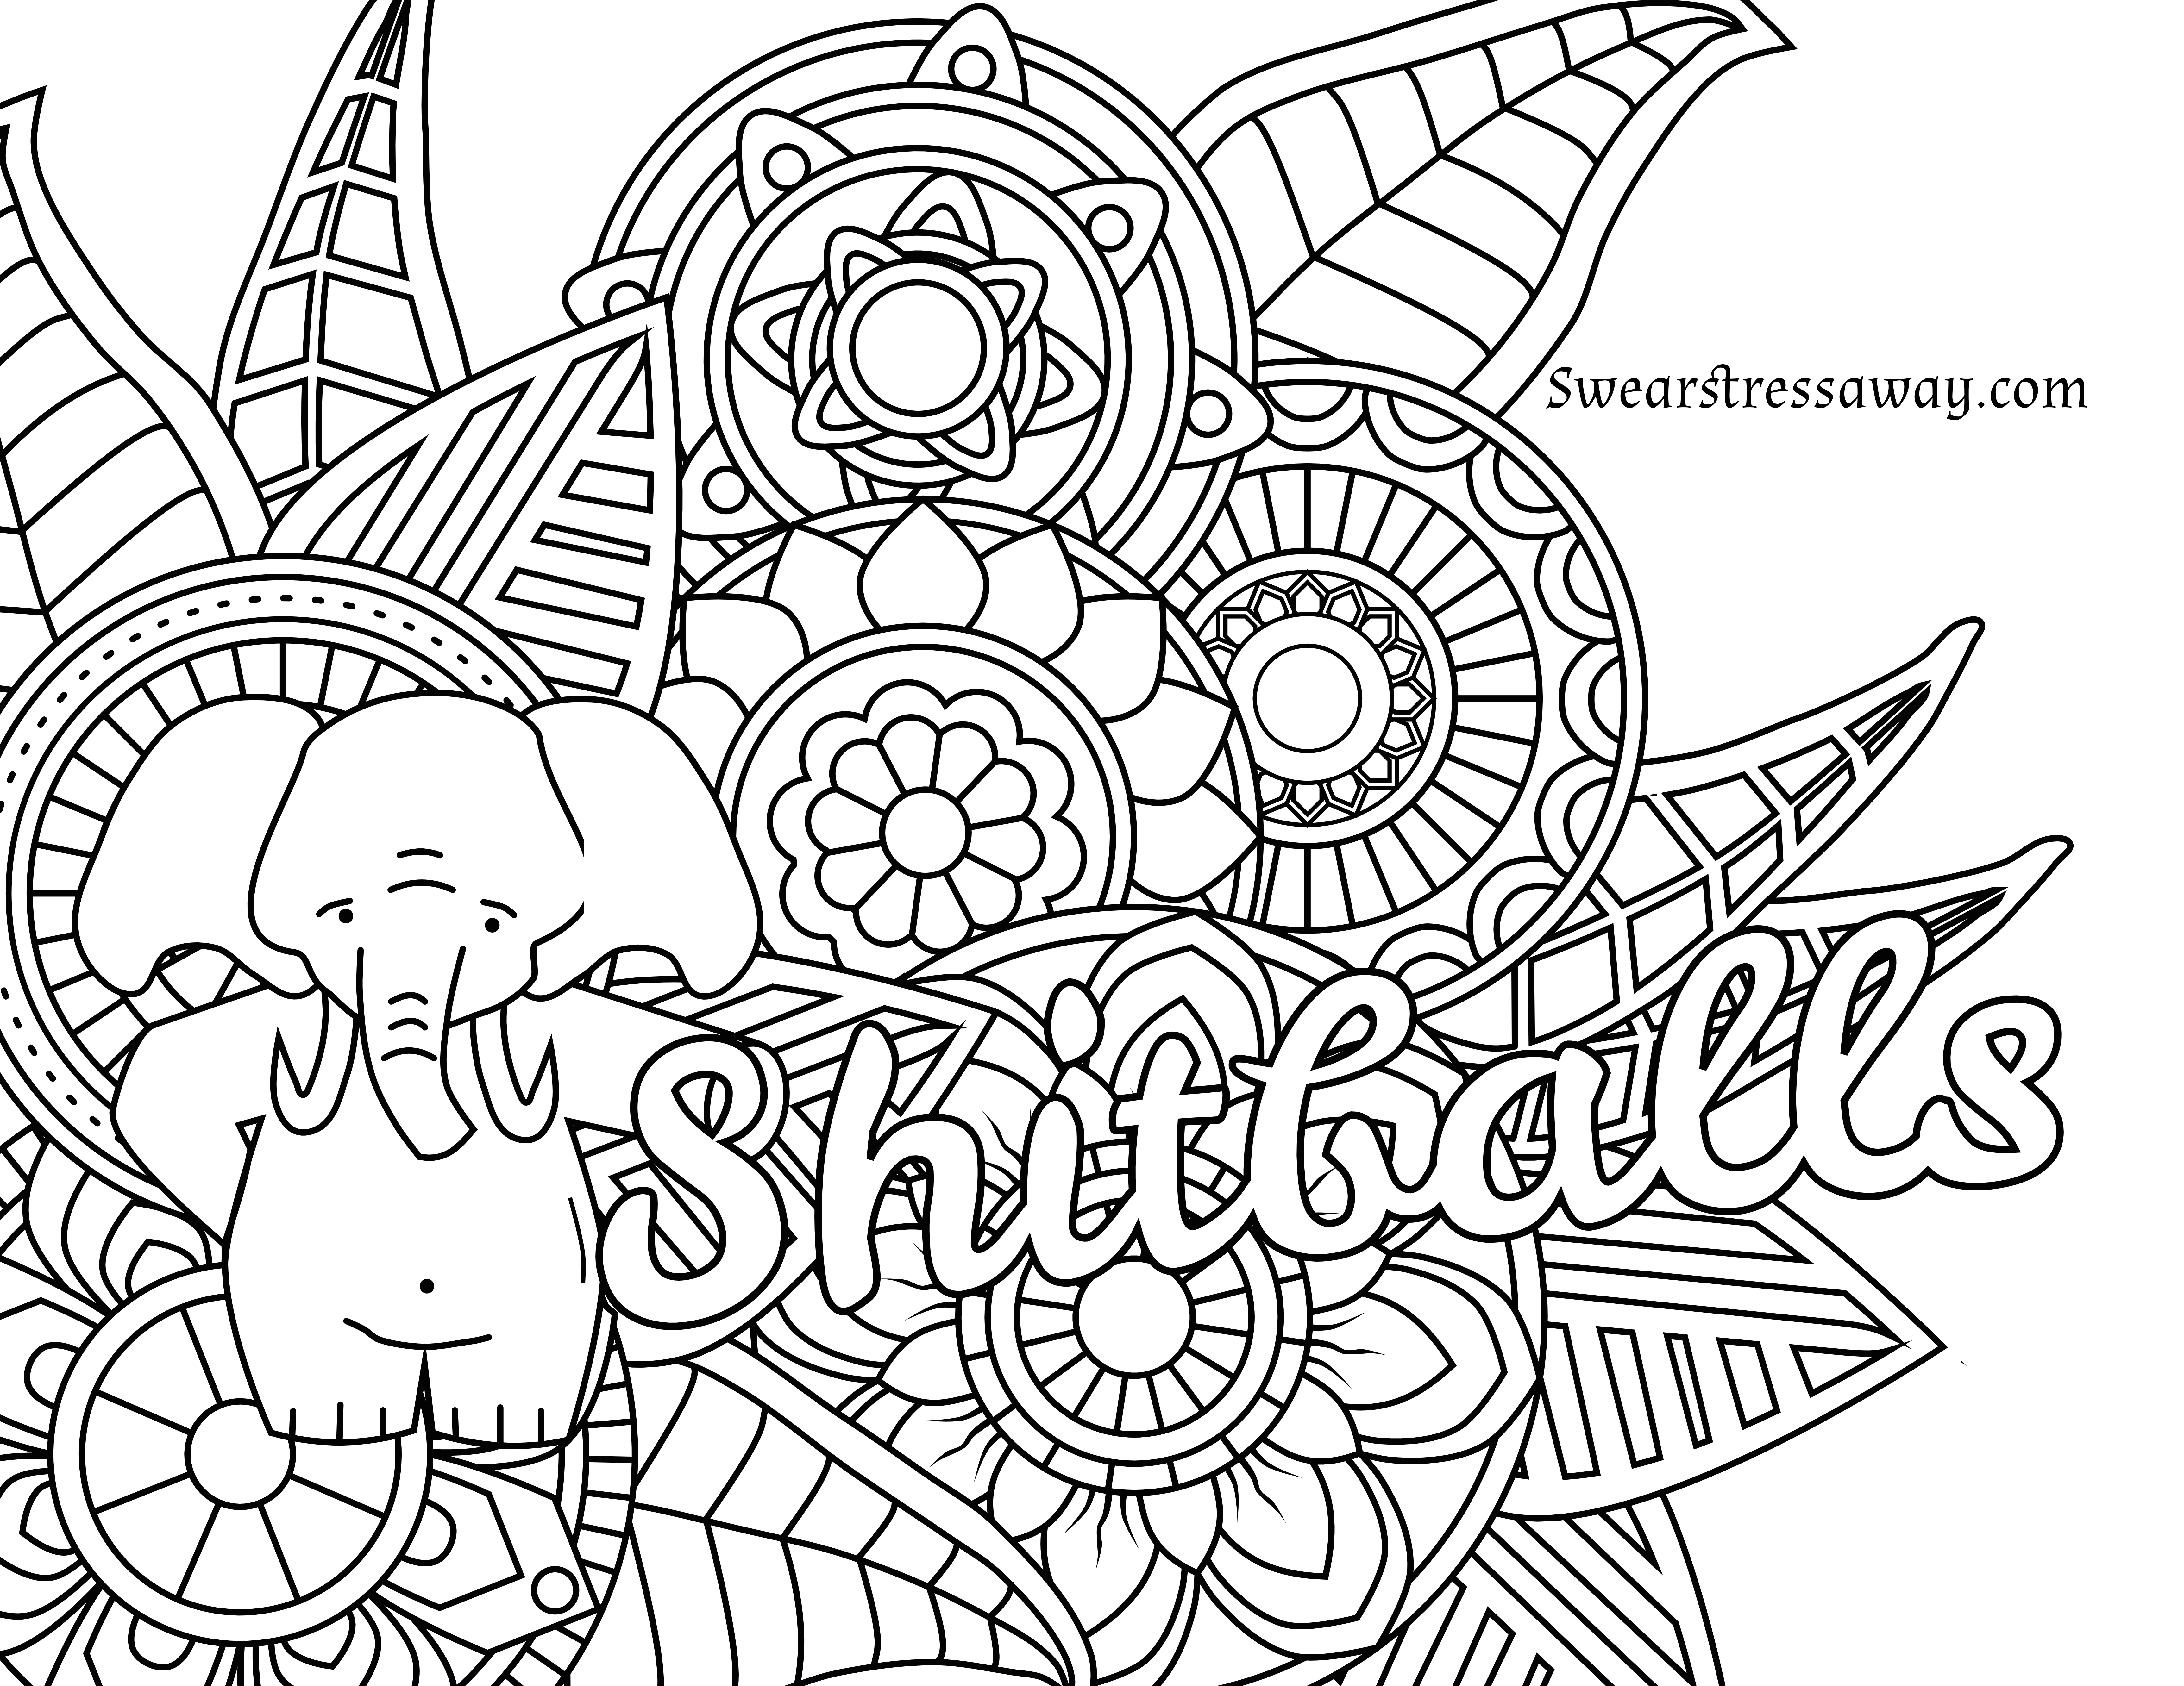 Coloring Pages : Free Printable Coloring Pages Adults Quotes For - Free Printable Coloring Books For Adults